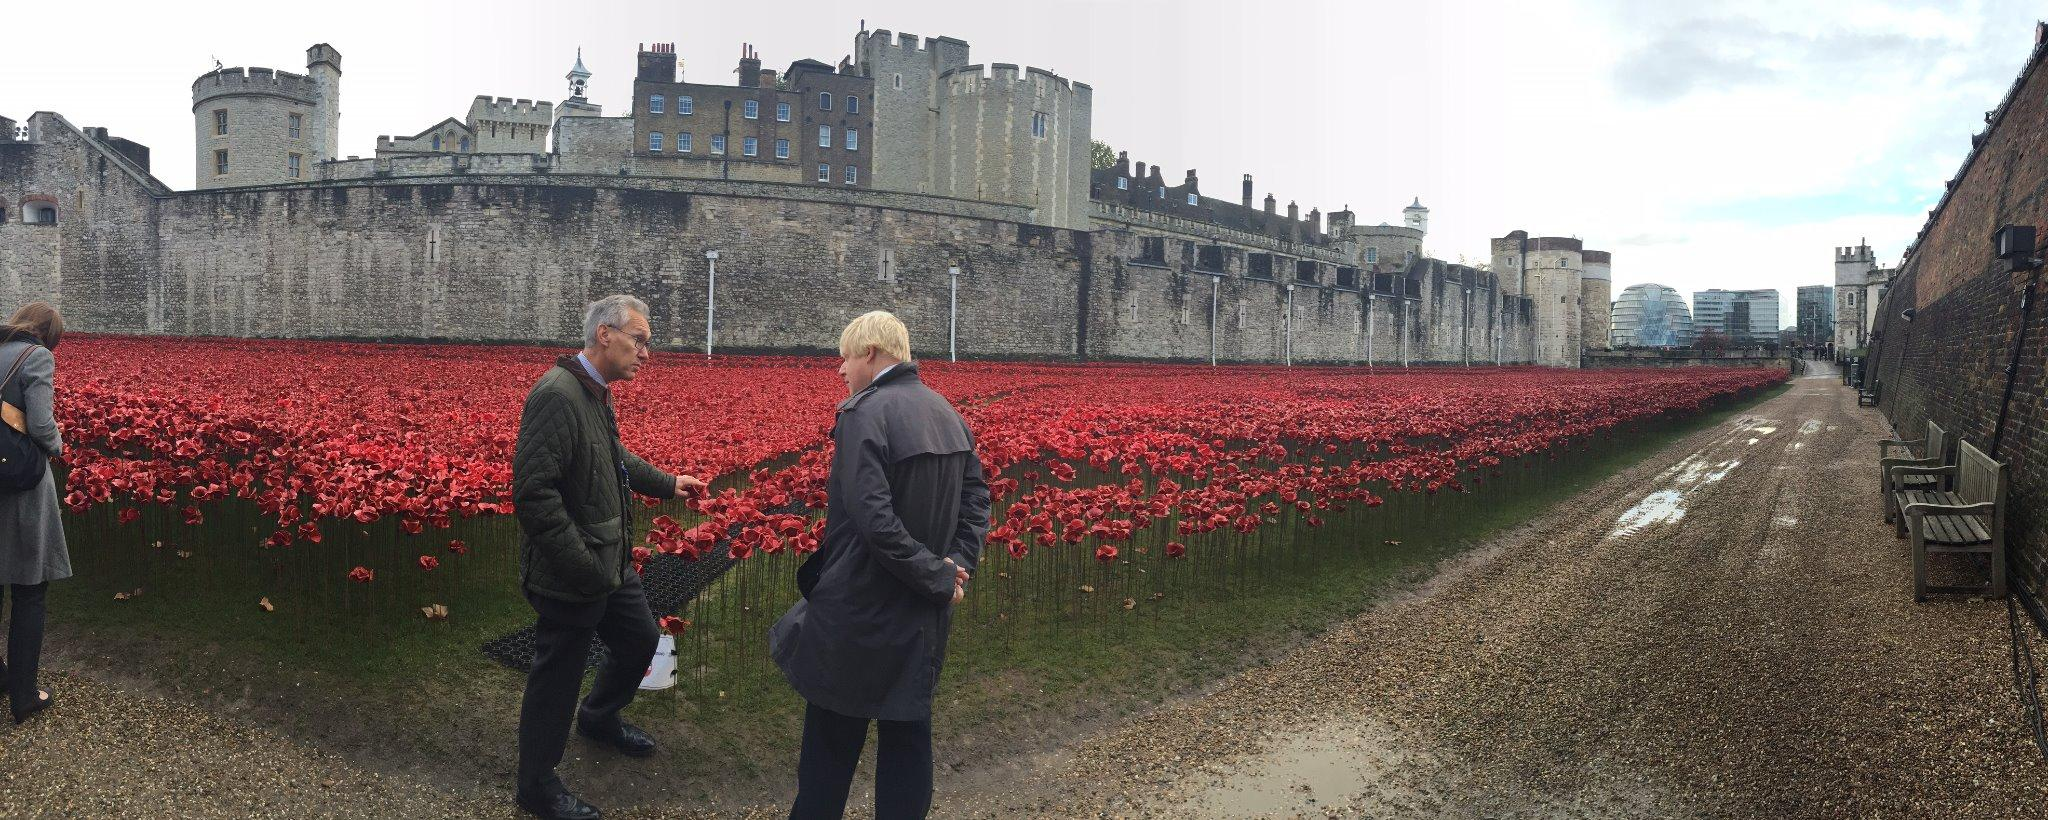 Beforehand I went to look at the poignant Blood Swept Lands and Seas of Red at @HRP_palaces Tower of London http://t.co/dWUV73TzUO